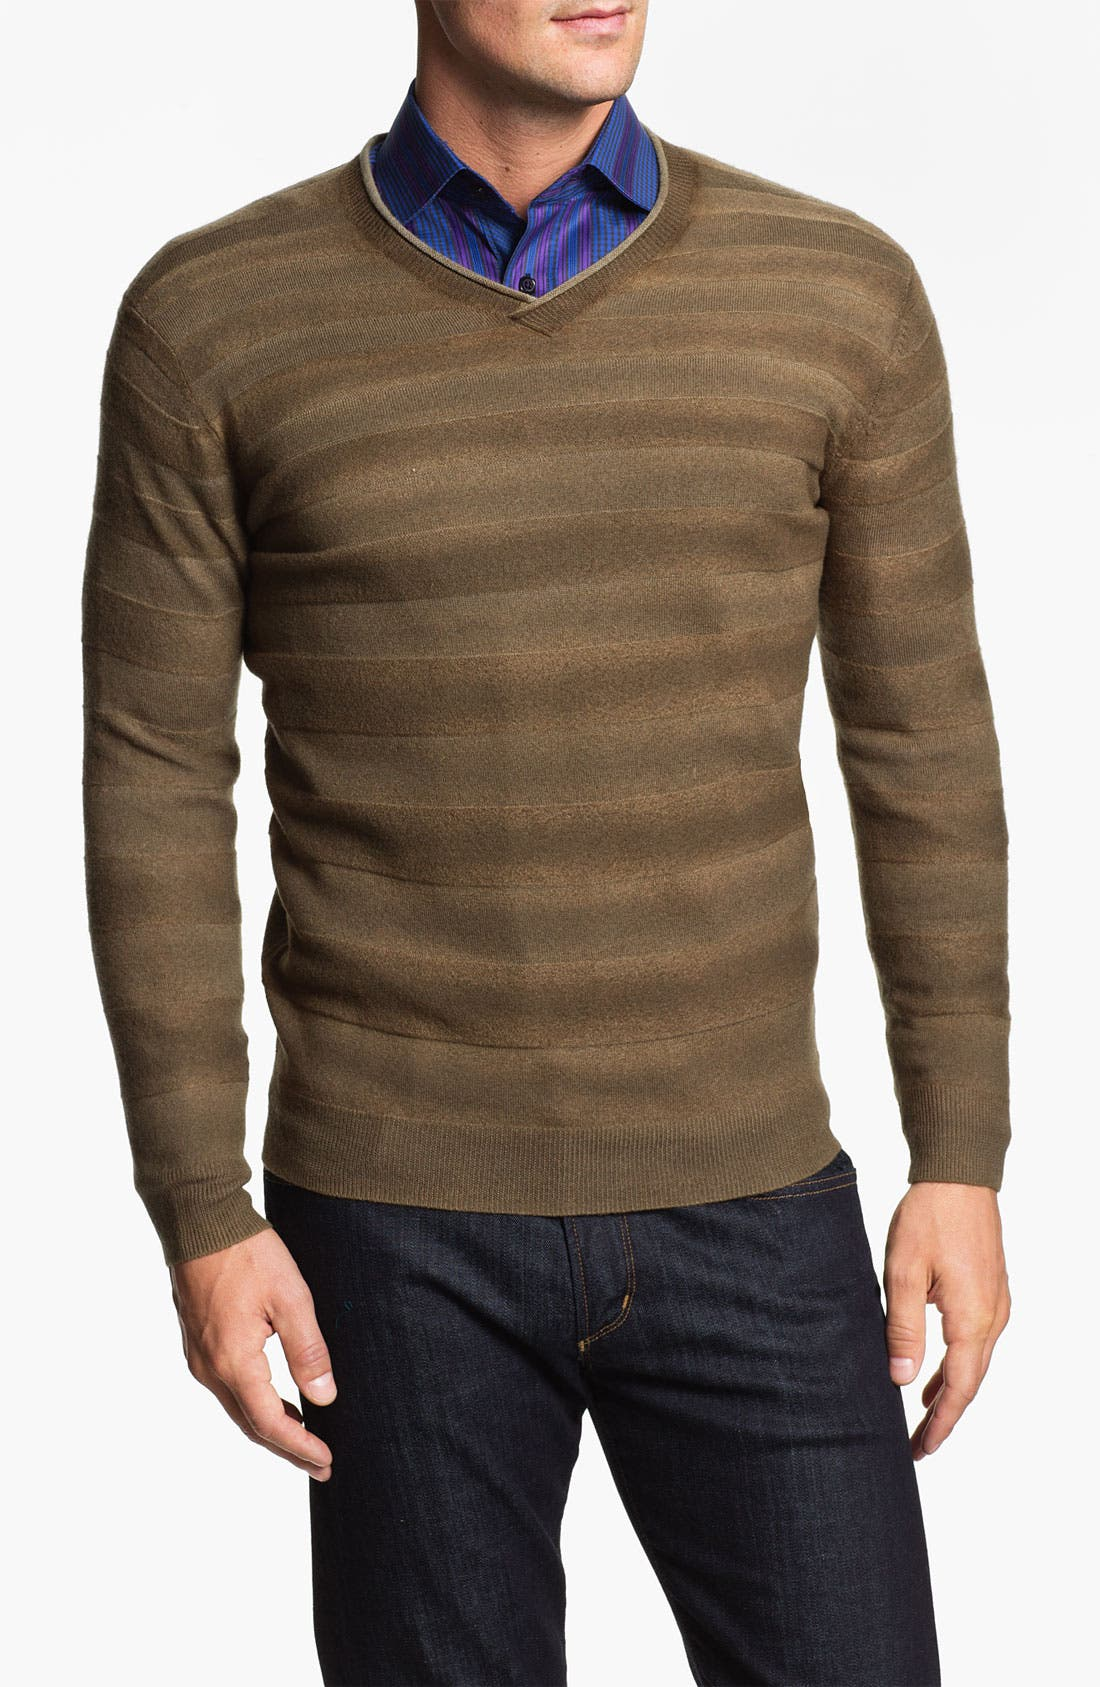 Main Image - Bugatchi Uomo V-Neck Merino Wool Sweater